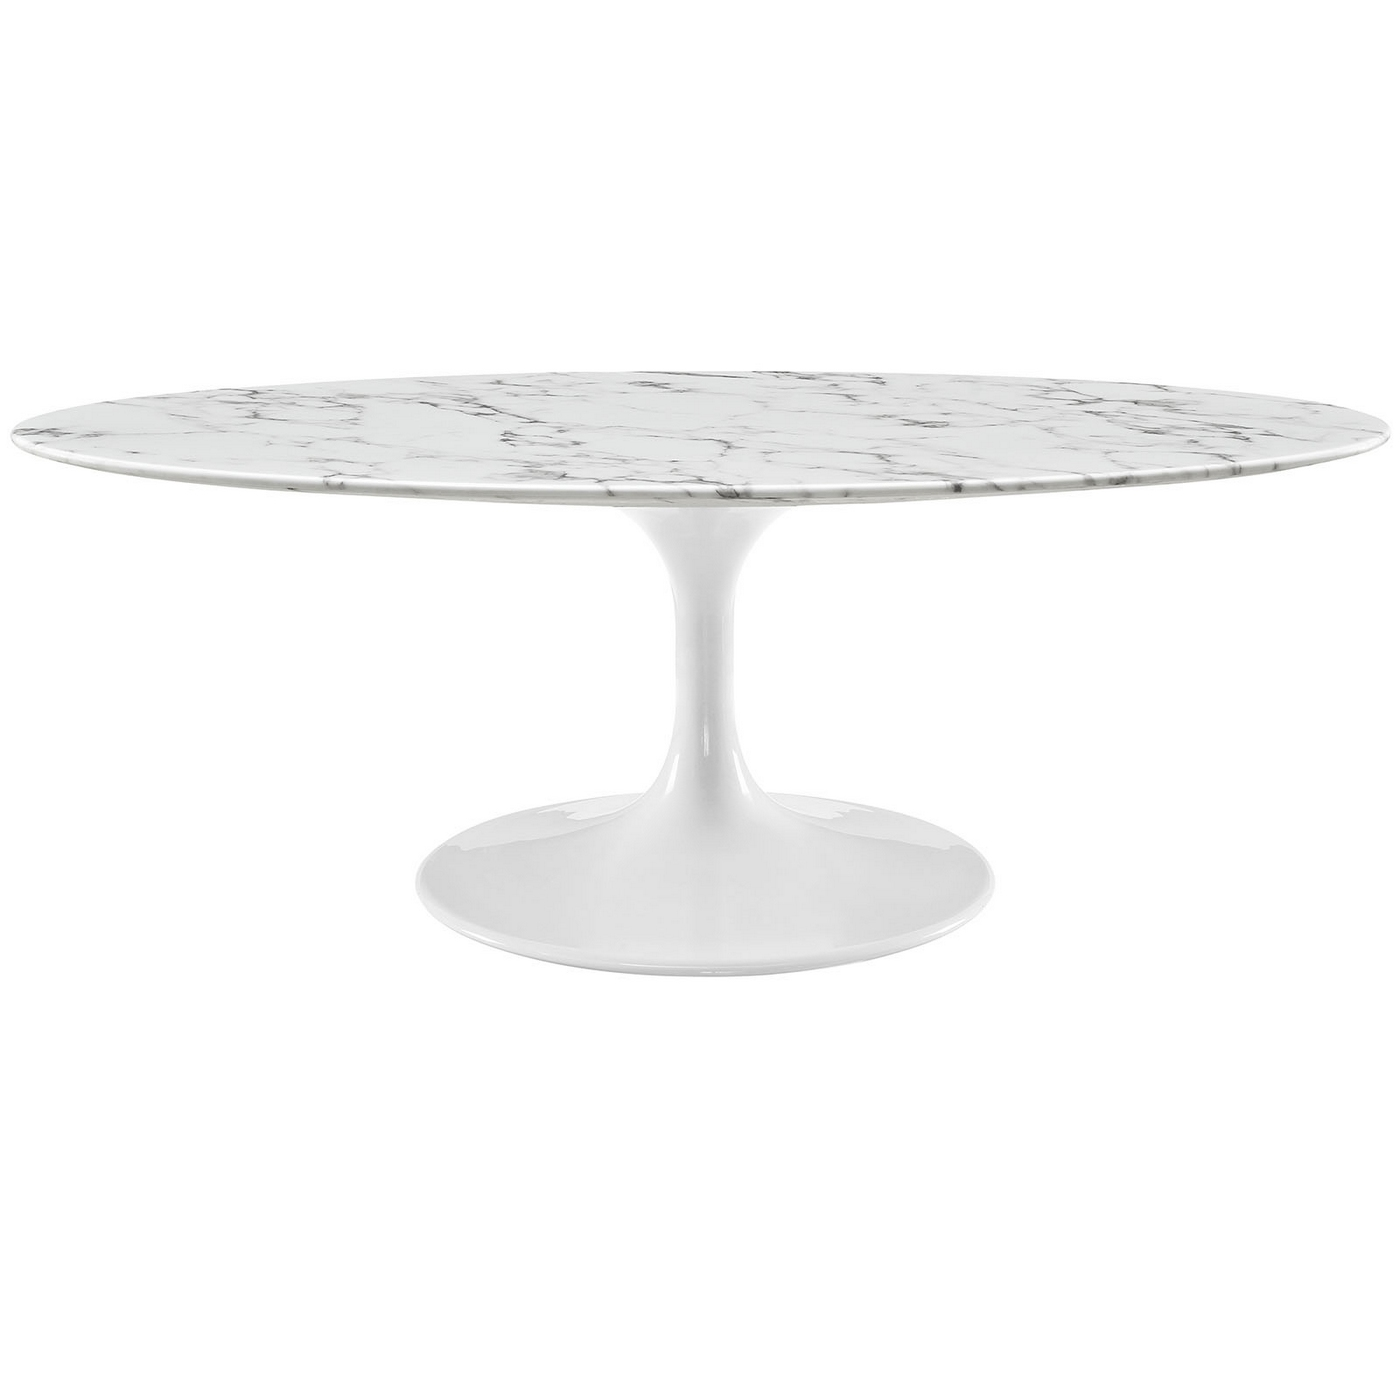 "Oval Coffee Table Marble: Lippa 48"" Oval-shaped Faux Marble Coffee Table W/metal"